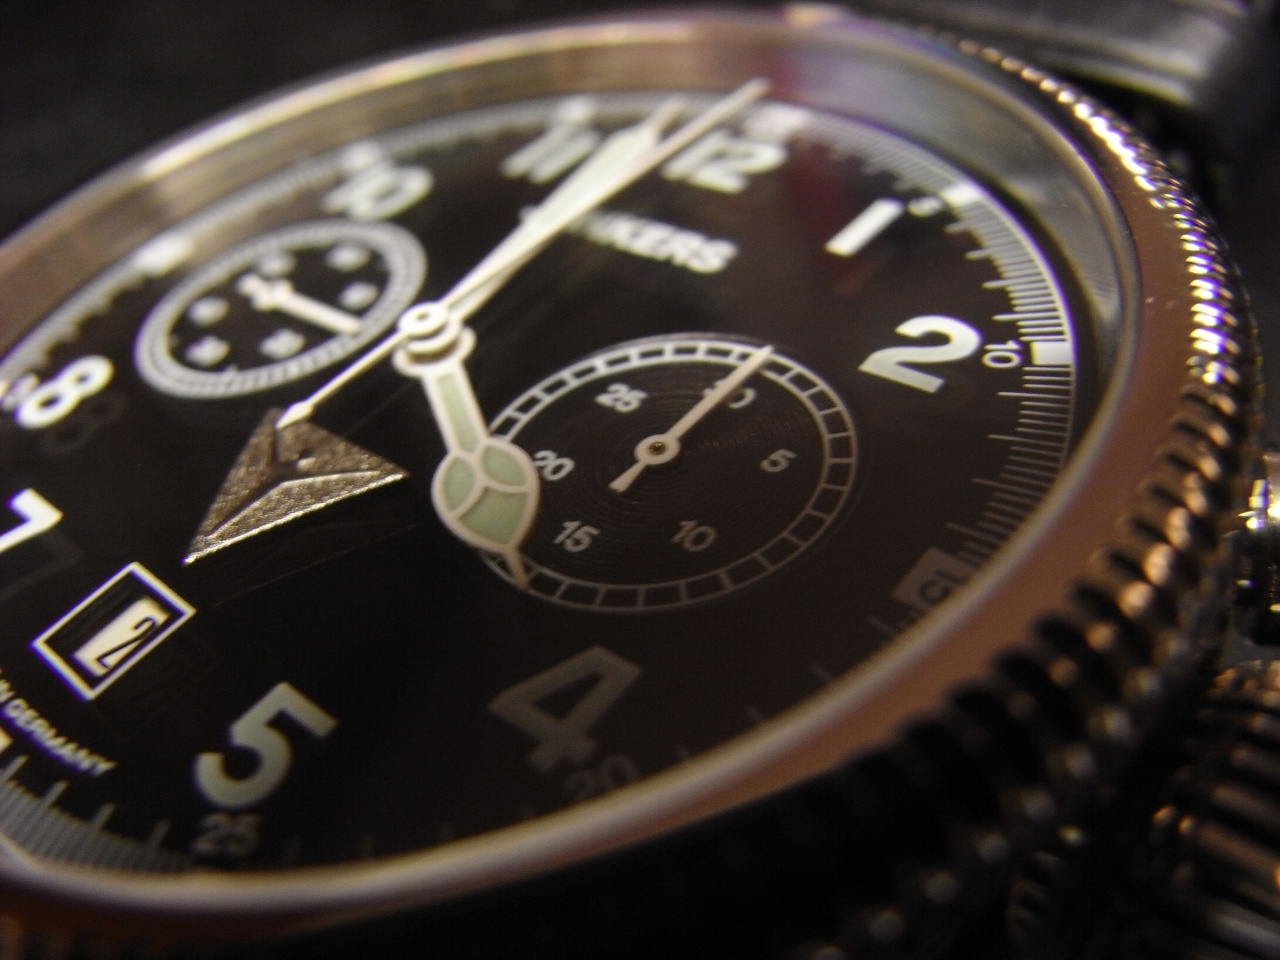 Junkers Flieger-Chronograph